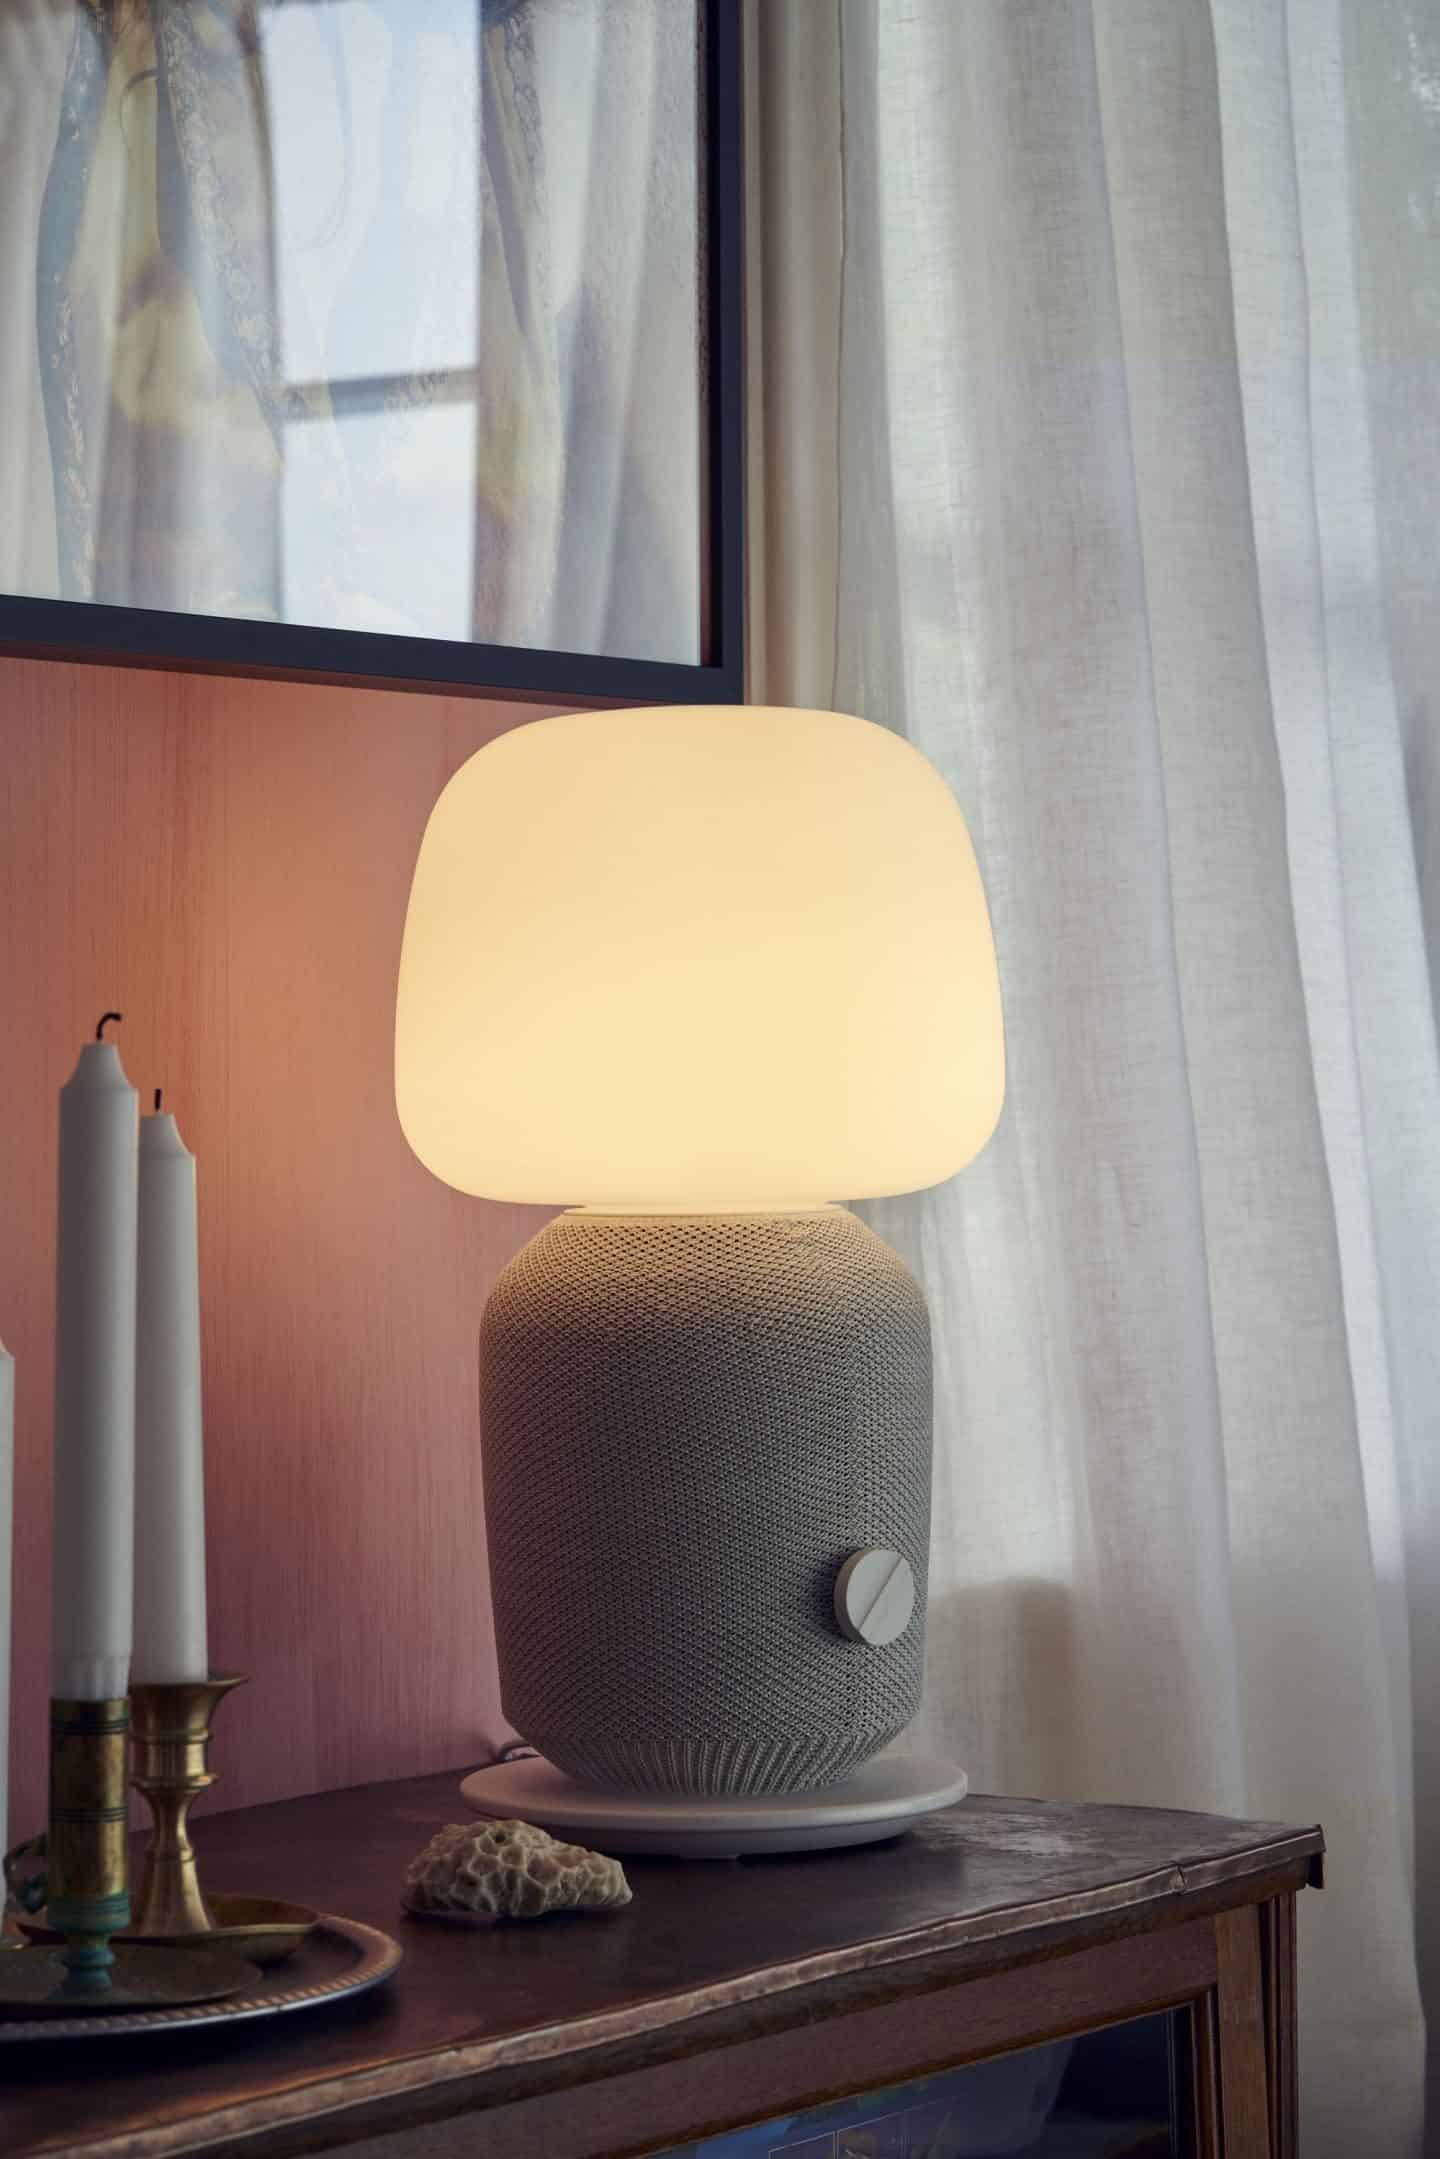 Symfonisk speakers range from IKEA and SONOS features a smart speaker lamp